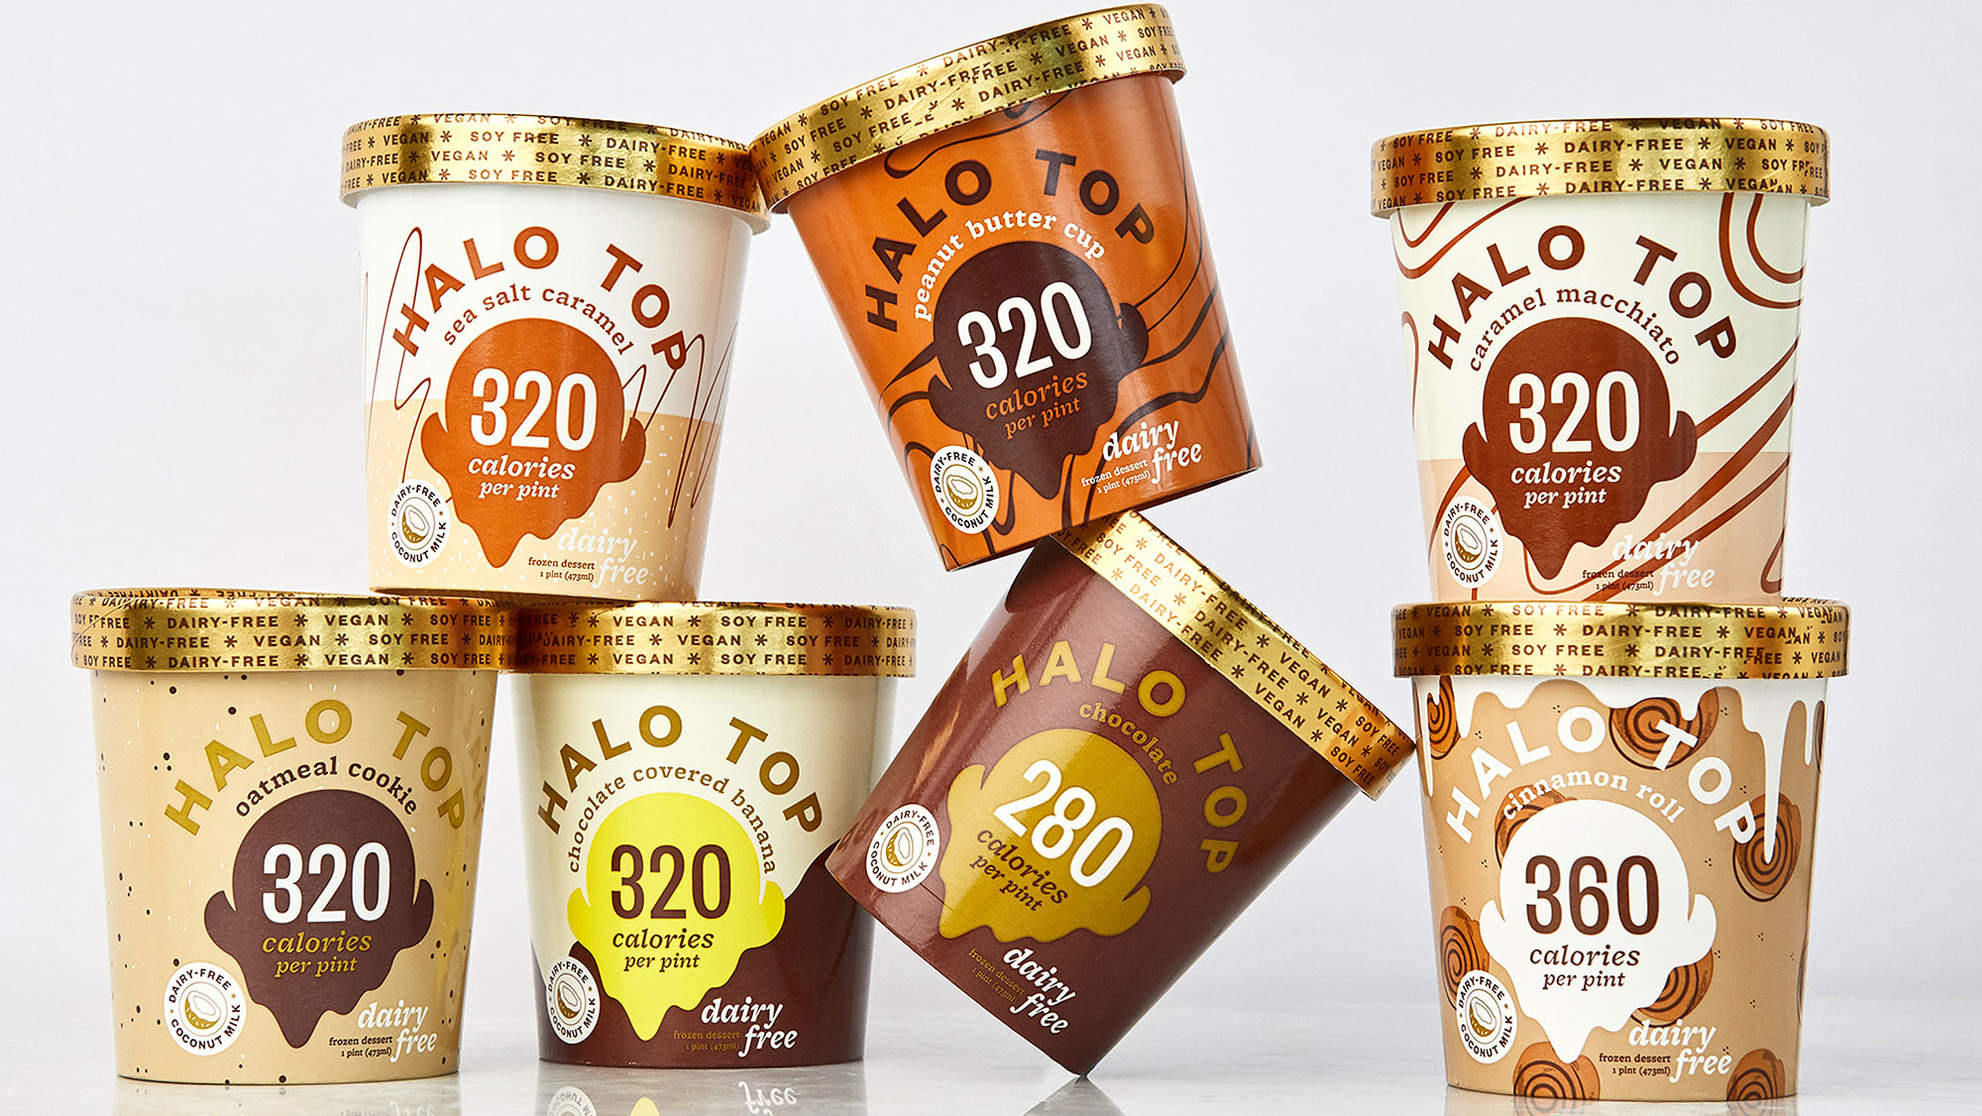 Halo Top Announces Their First Non-Dairy and Vegan Ice Cream Flavors